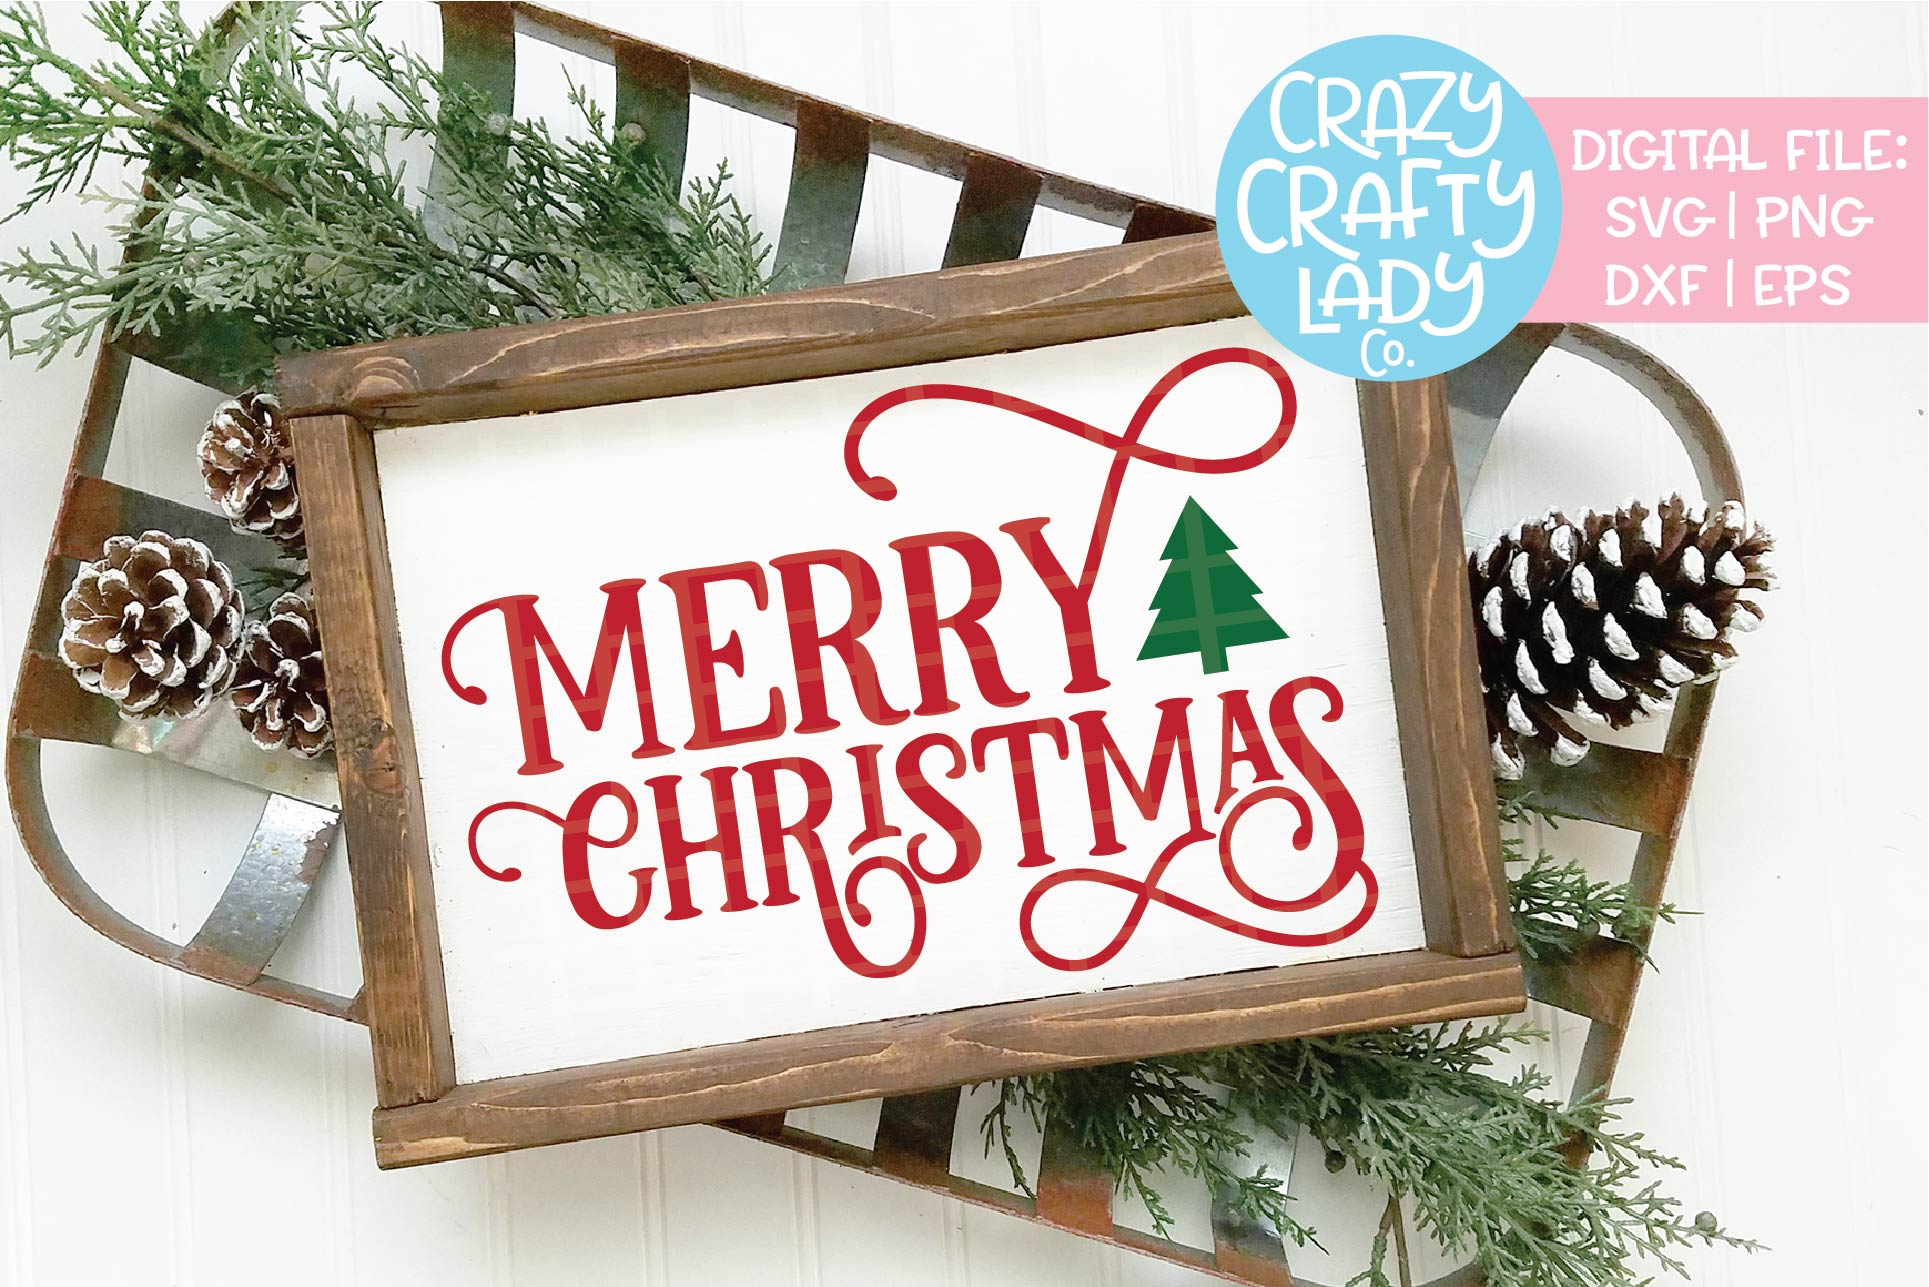 Merry Christmas SVG DXF EPS PNG Cut File example image 1